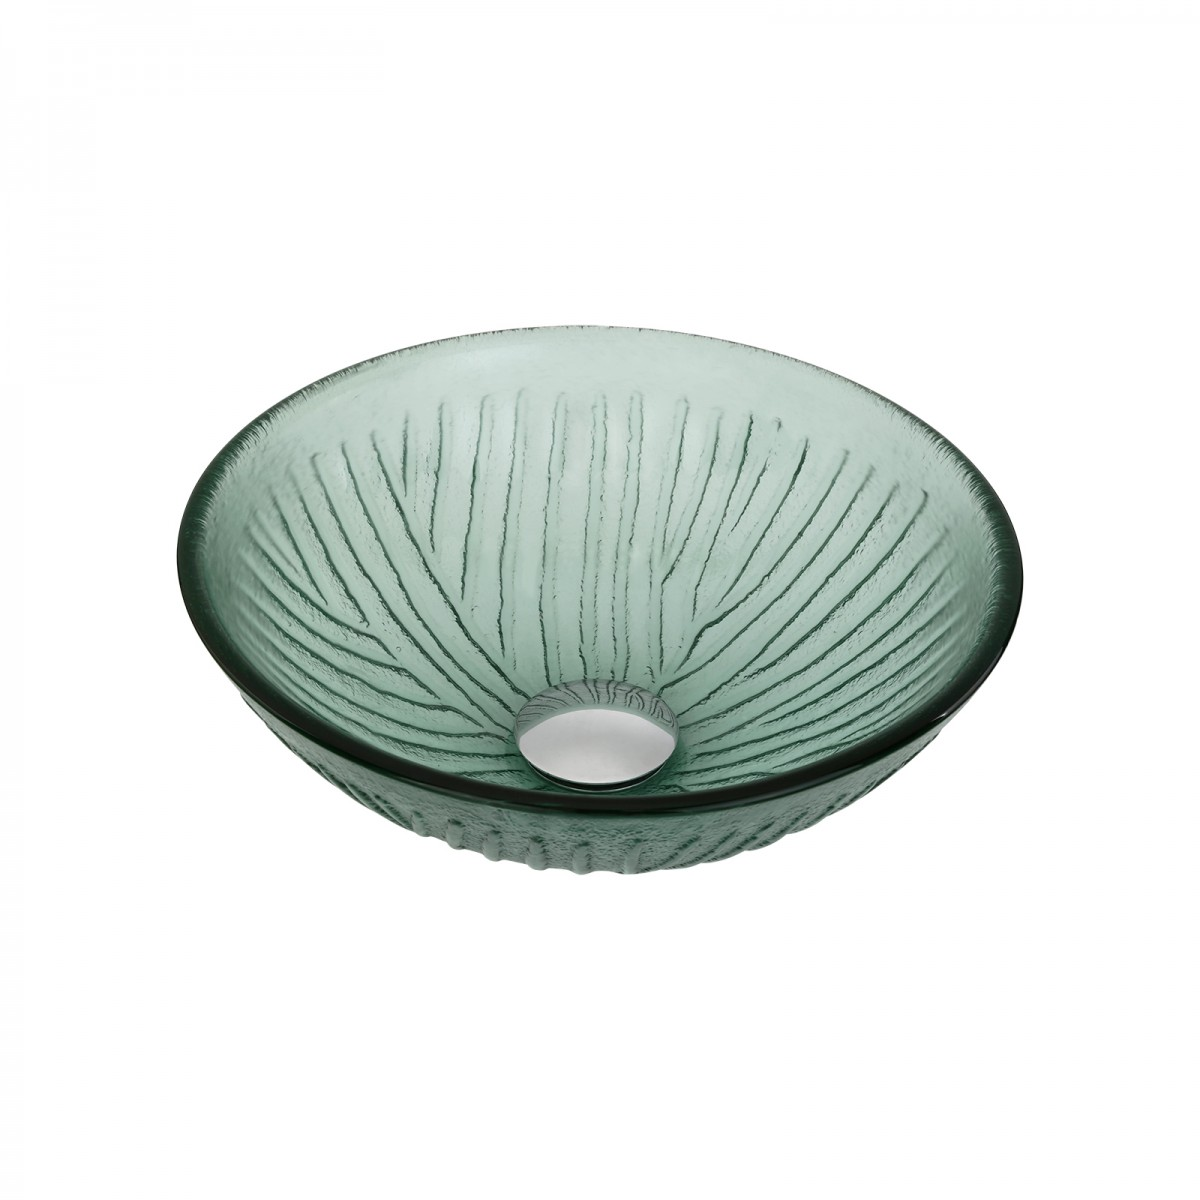 Glass Vessel Sink with Drain Frosted Green Tempered Glass Mini Bowl Sink. Vessel Sink with Drain Frosted Green Tempered Glass Mini Bowl Sink